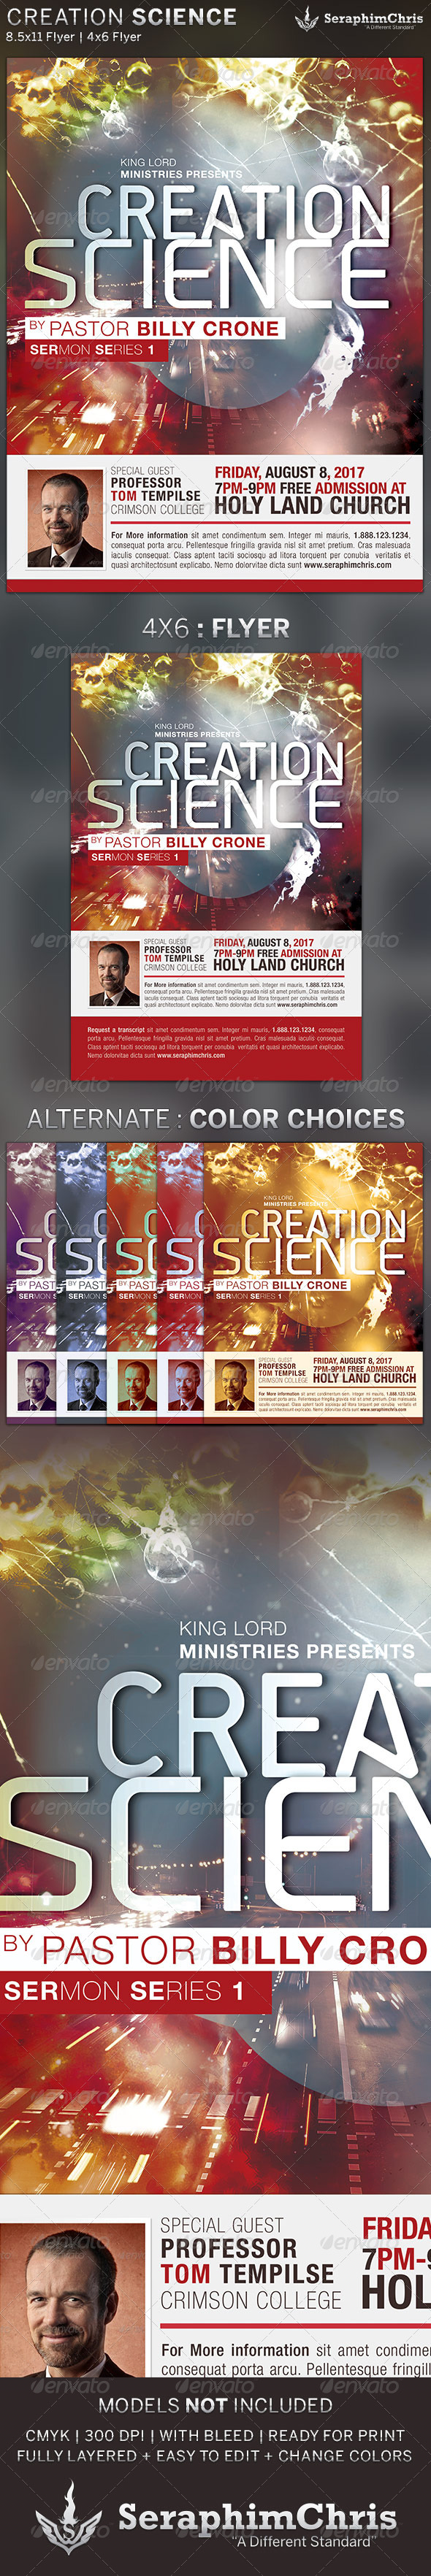 Creation Science: Church Flyer Template - Church Flyers